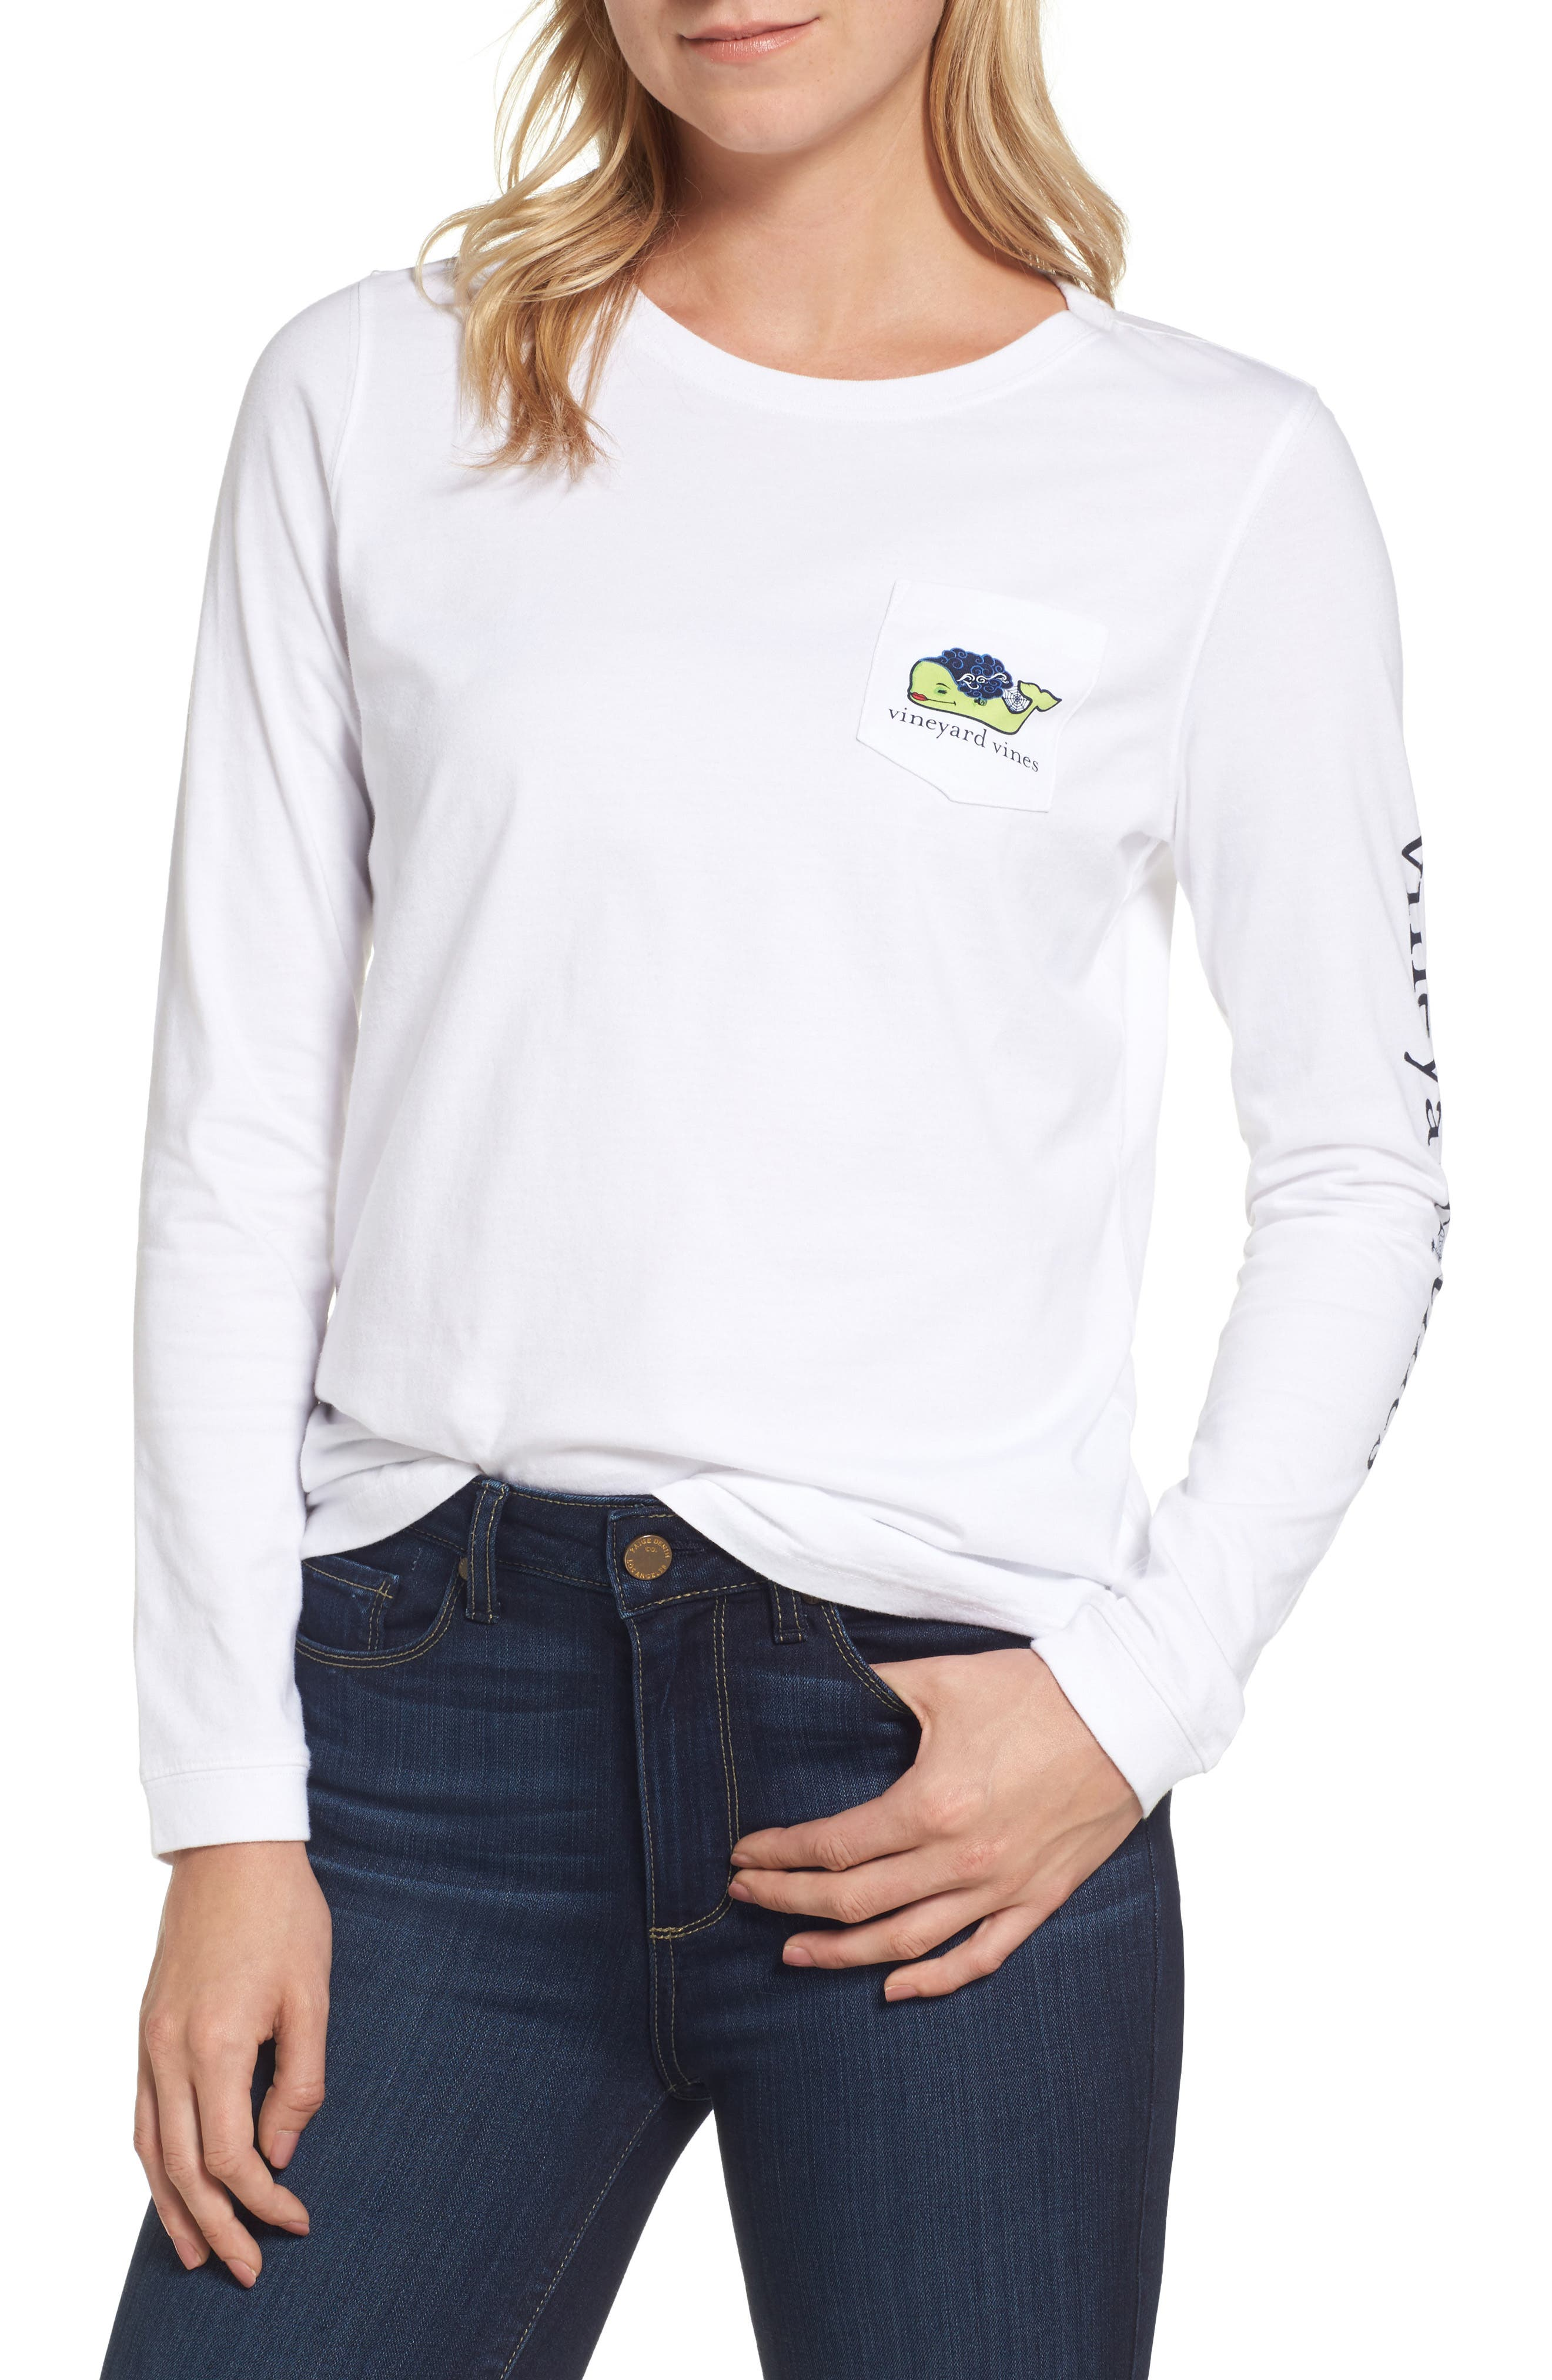 Bride of Frank Whale Pocket Tee,                         Main,                         color, White Cap